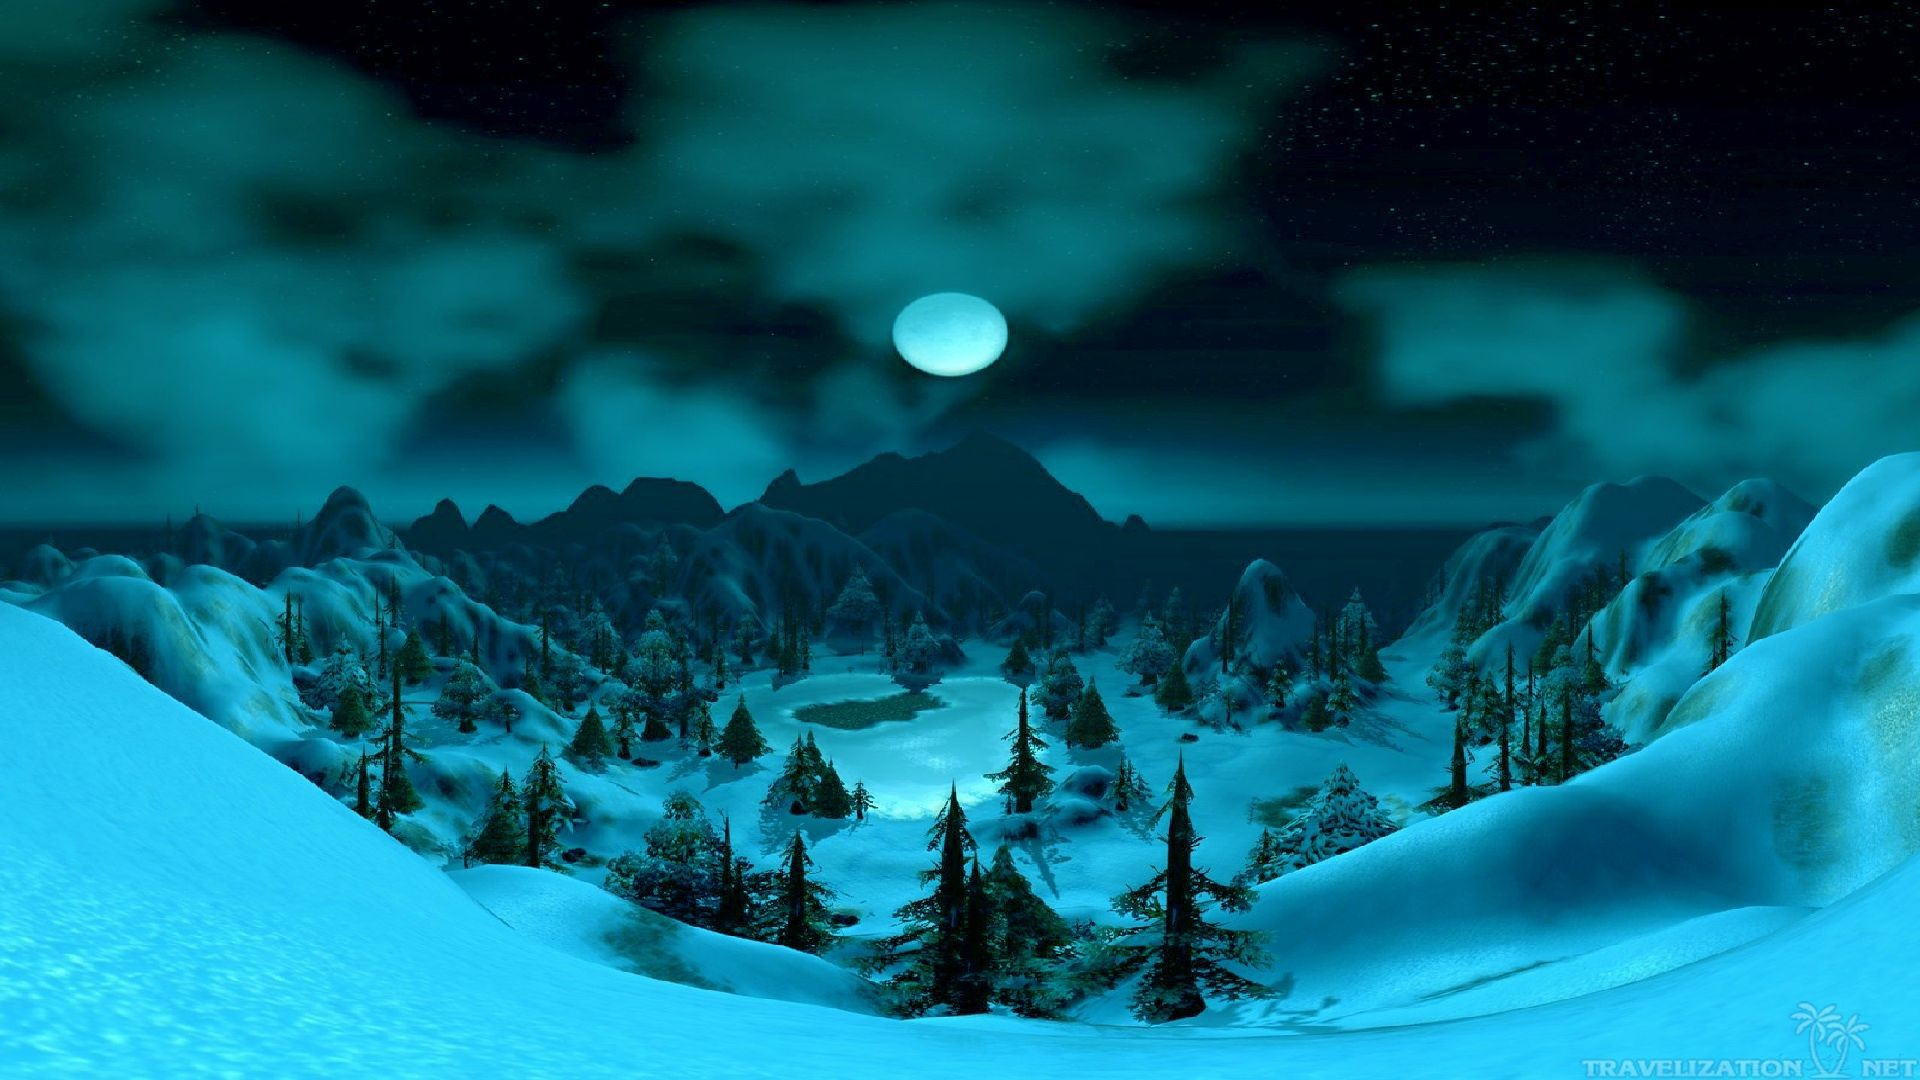 You can find Full Moon In Winter Night Wallpapers in many resolution such  as 1024×768, 1280×1024, 1366×768, …